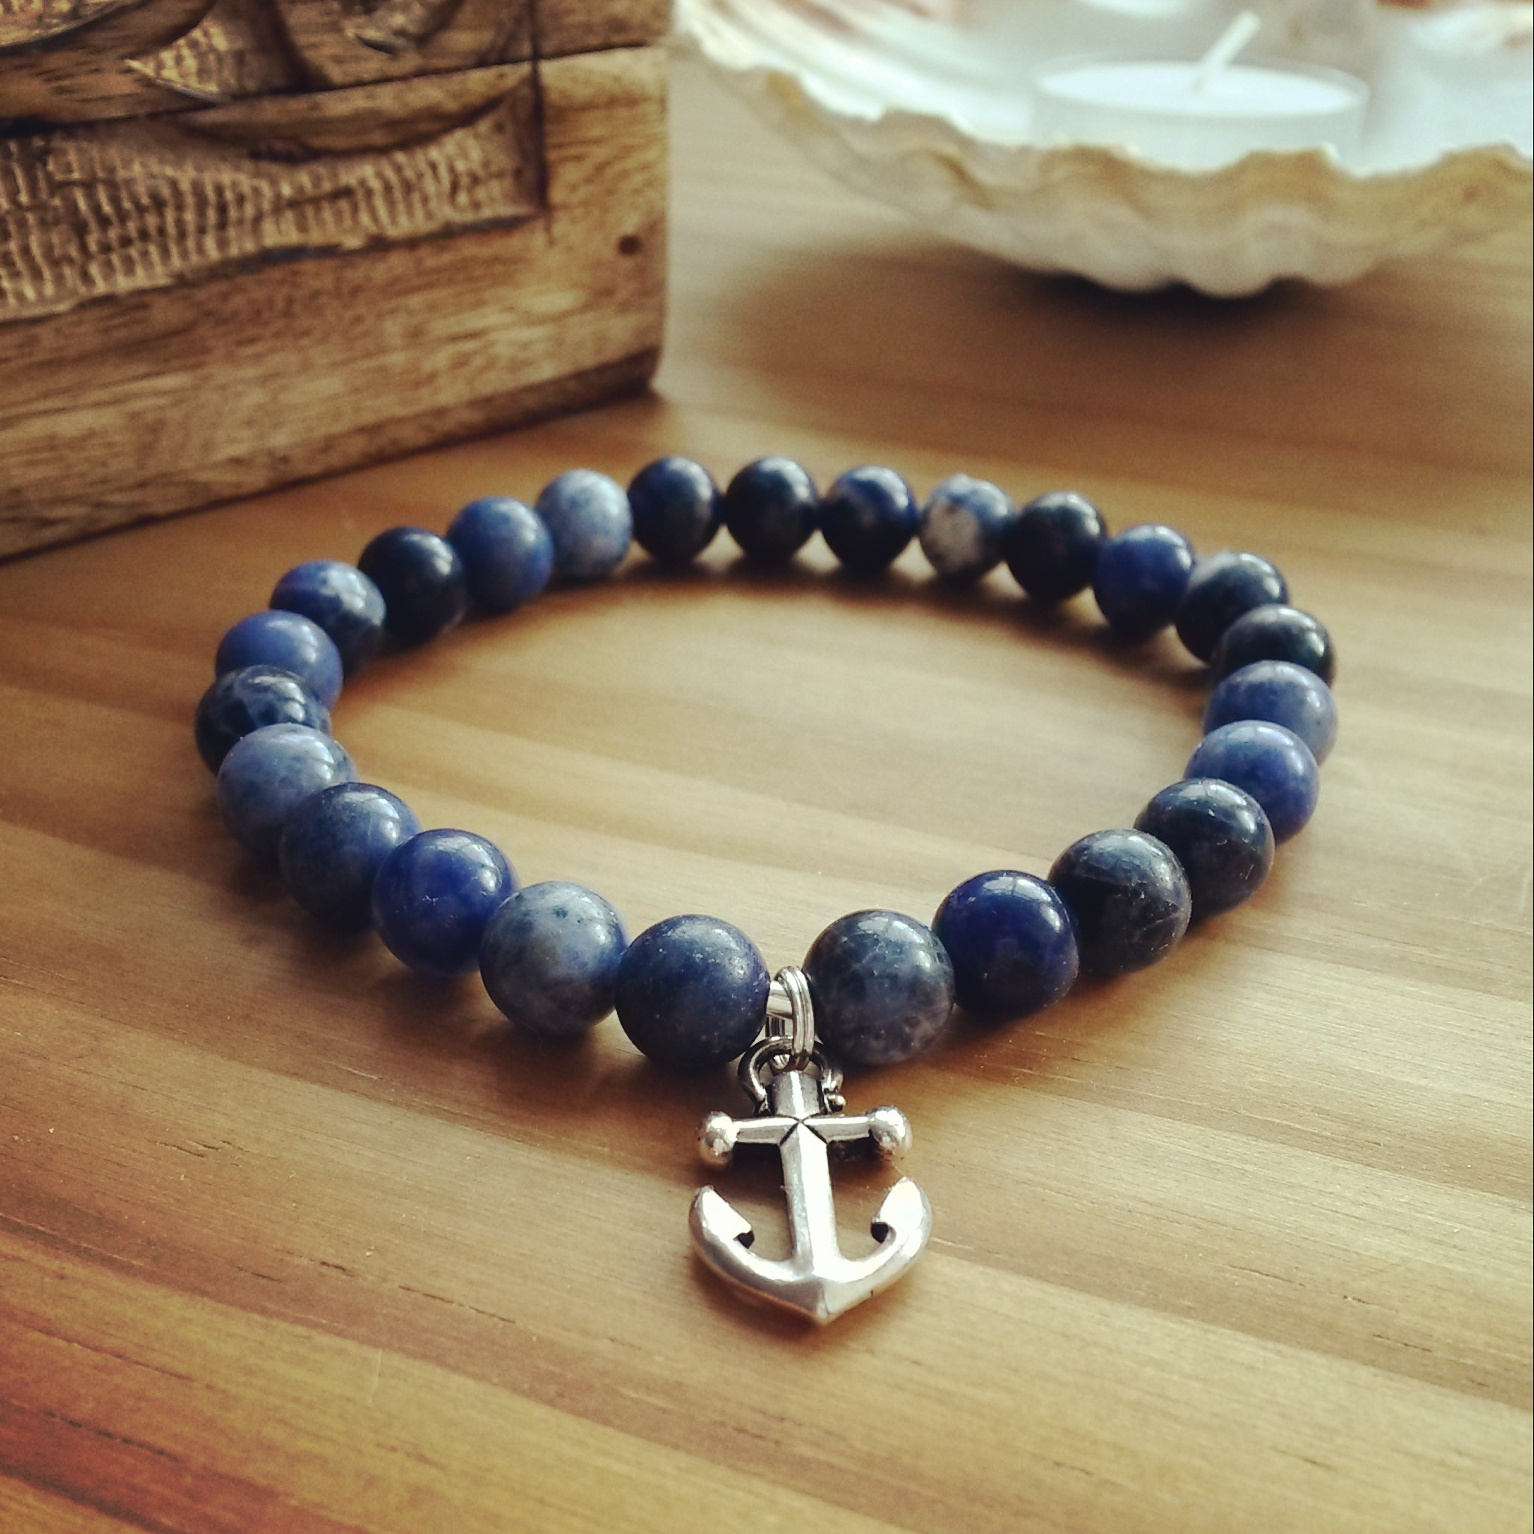 New Men's Anchor Bracelet  This Is A Nautical Inspired Men's Anchor  Bracelet The Anchor Is Silver Plated With Light Antique Finish